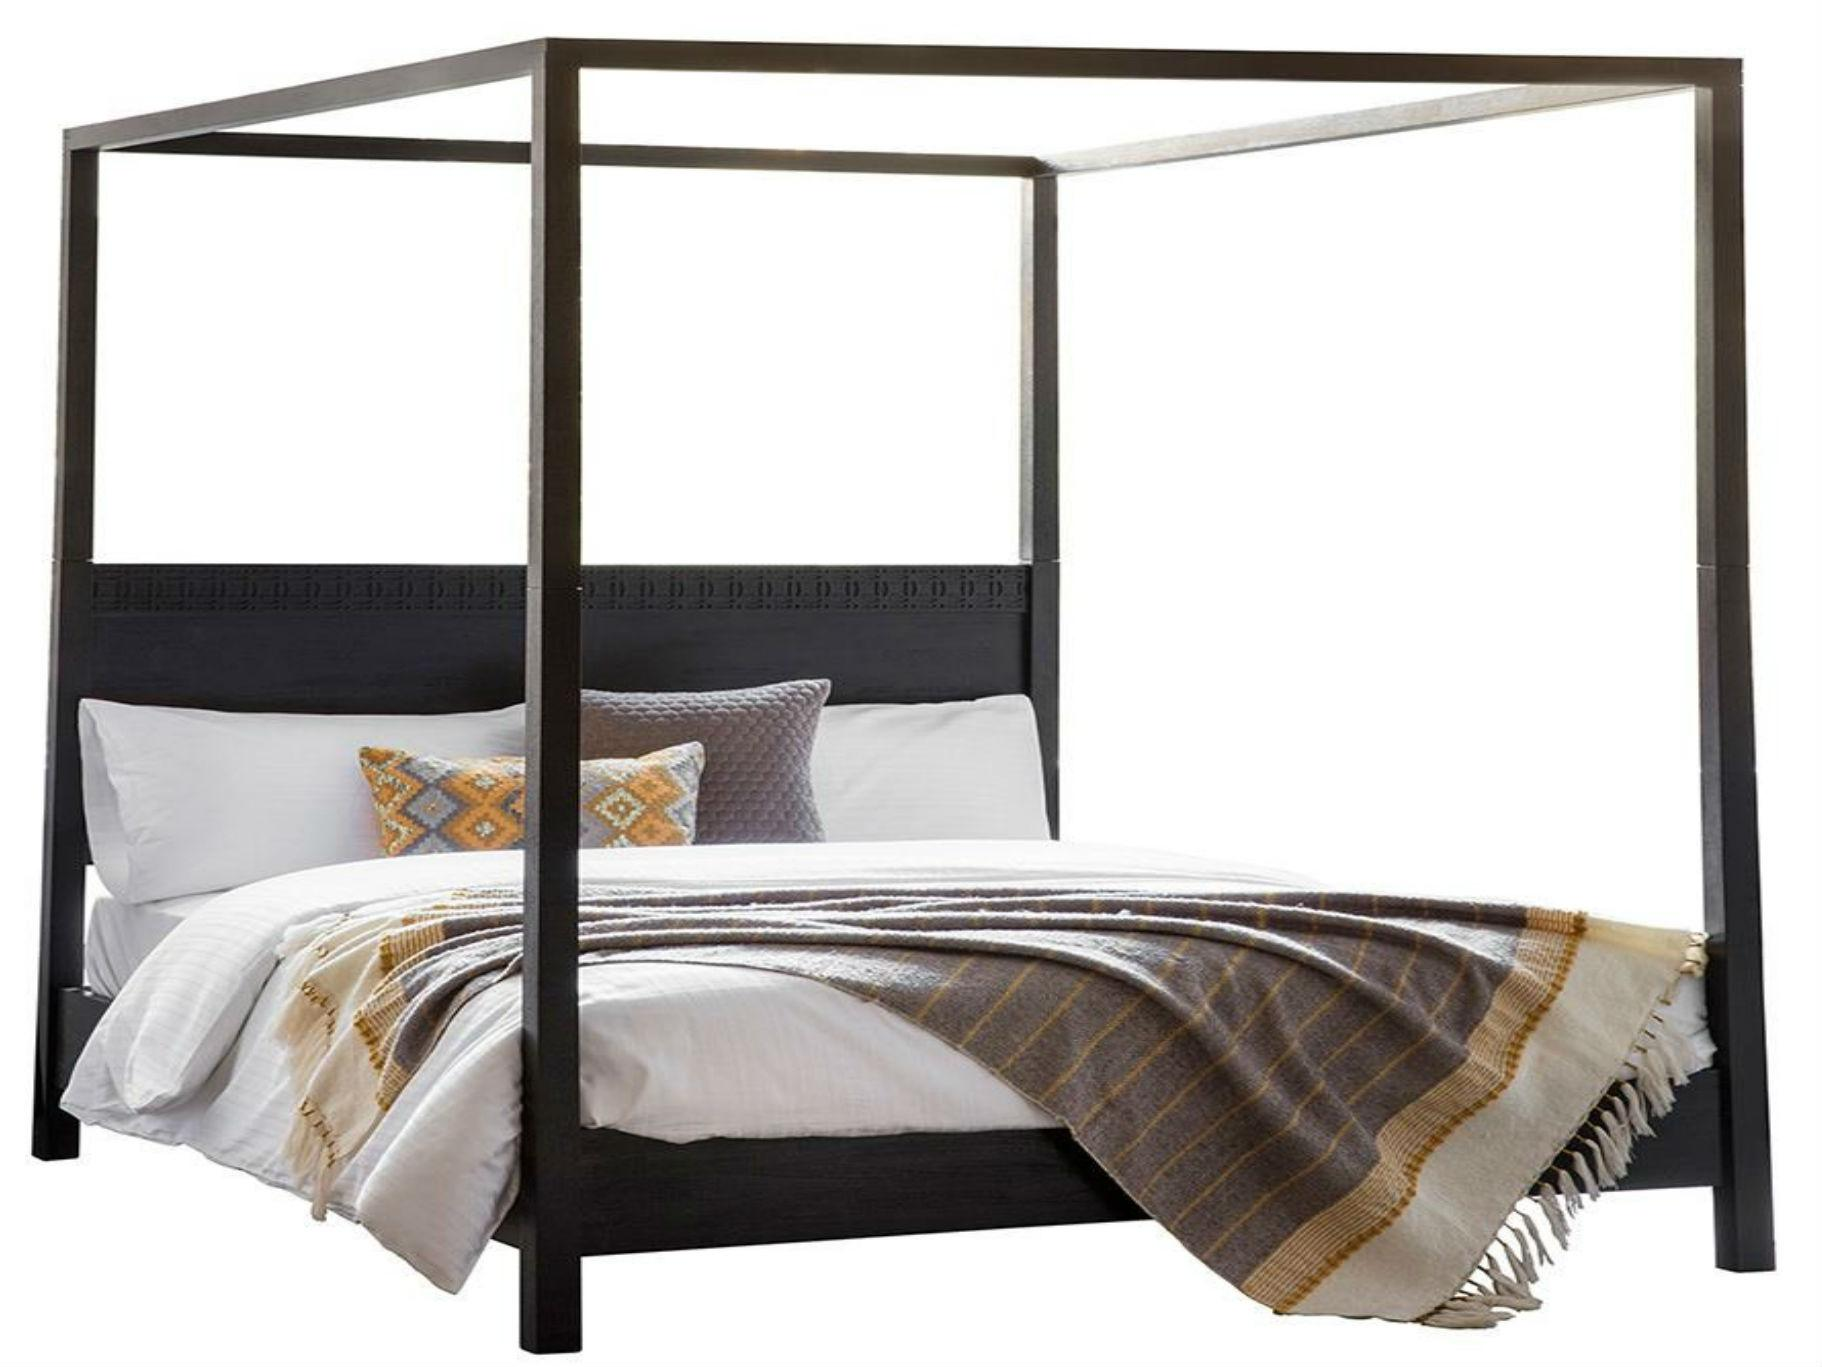 Houseology Collection Safari Boutique King Bed From 959, Houseology